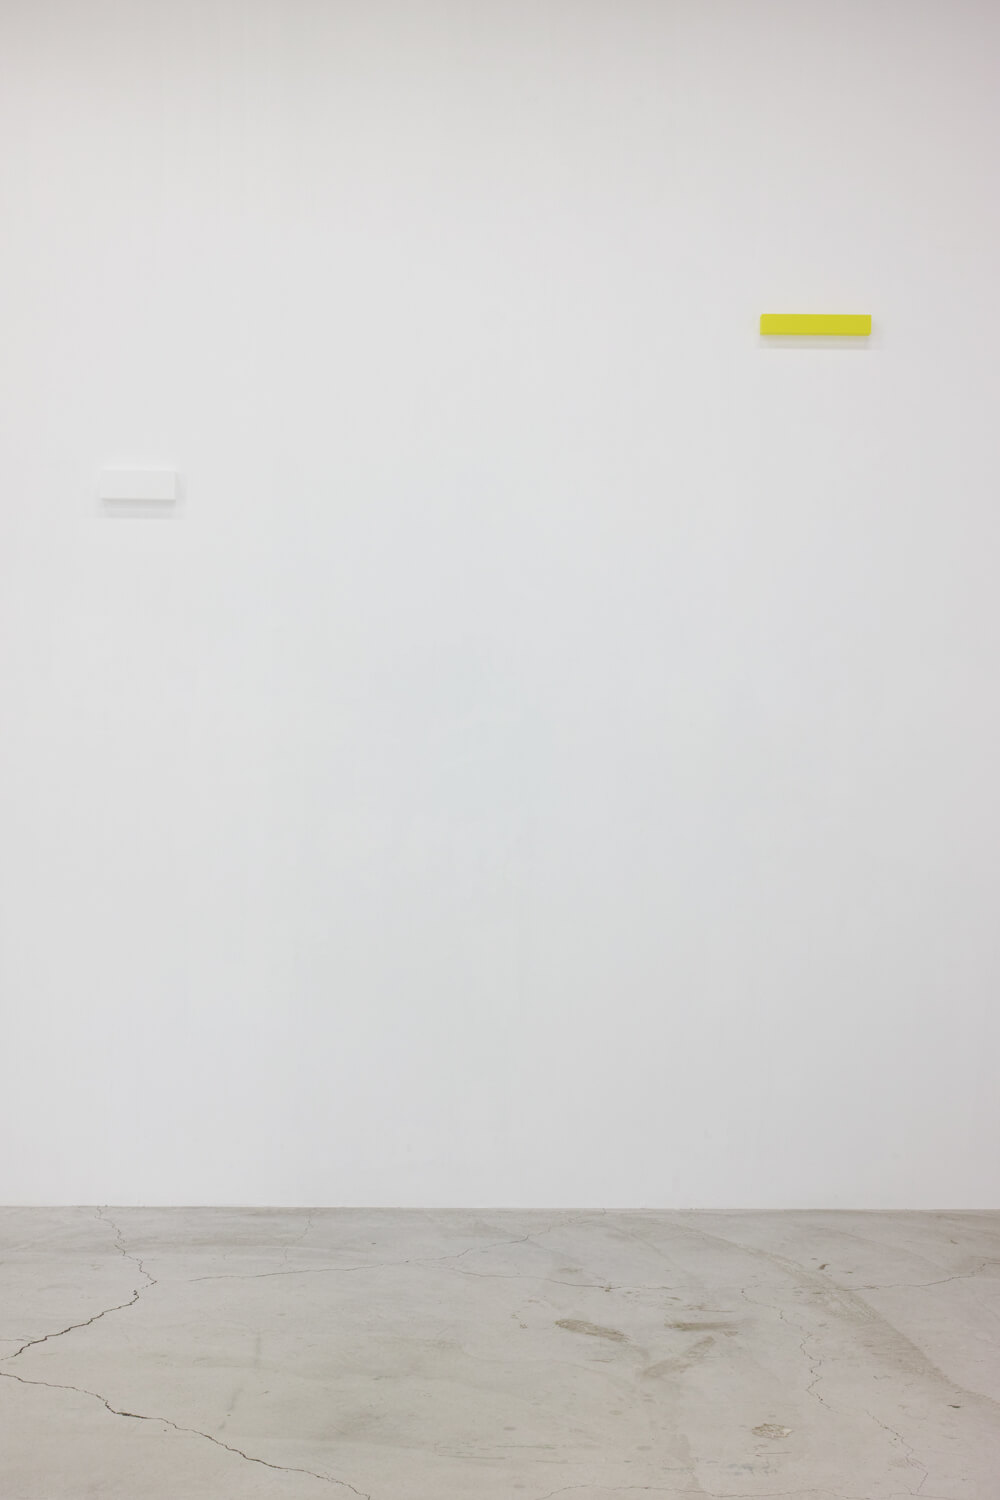 half note_white, silkscreen on perspex, 9 x 24 x 4 cm, 2018 (left)<br>half note_lemon, silkscreen on perspex, 6 x 36 x 4 cm, 2018 (right)